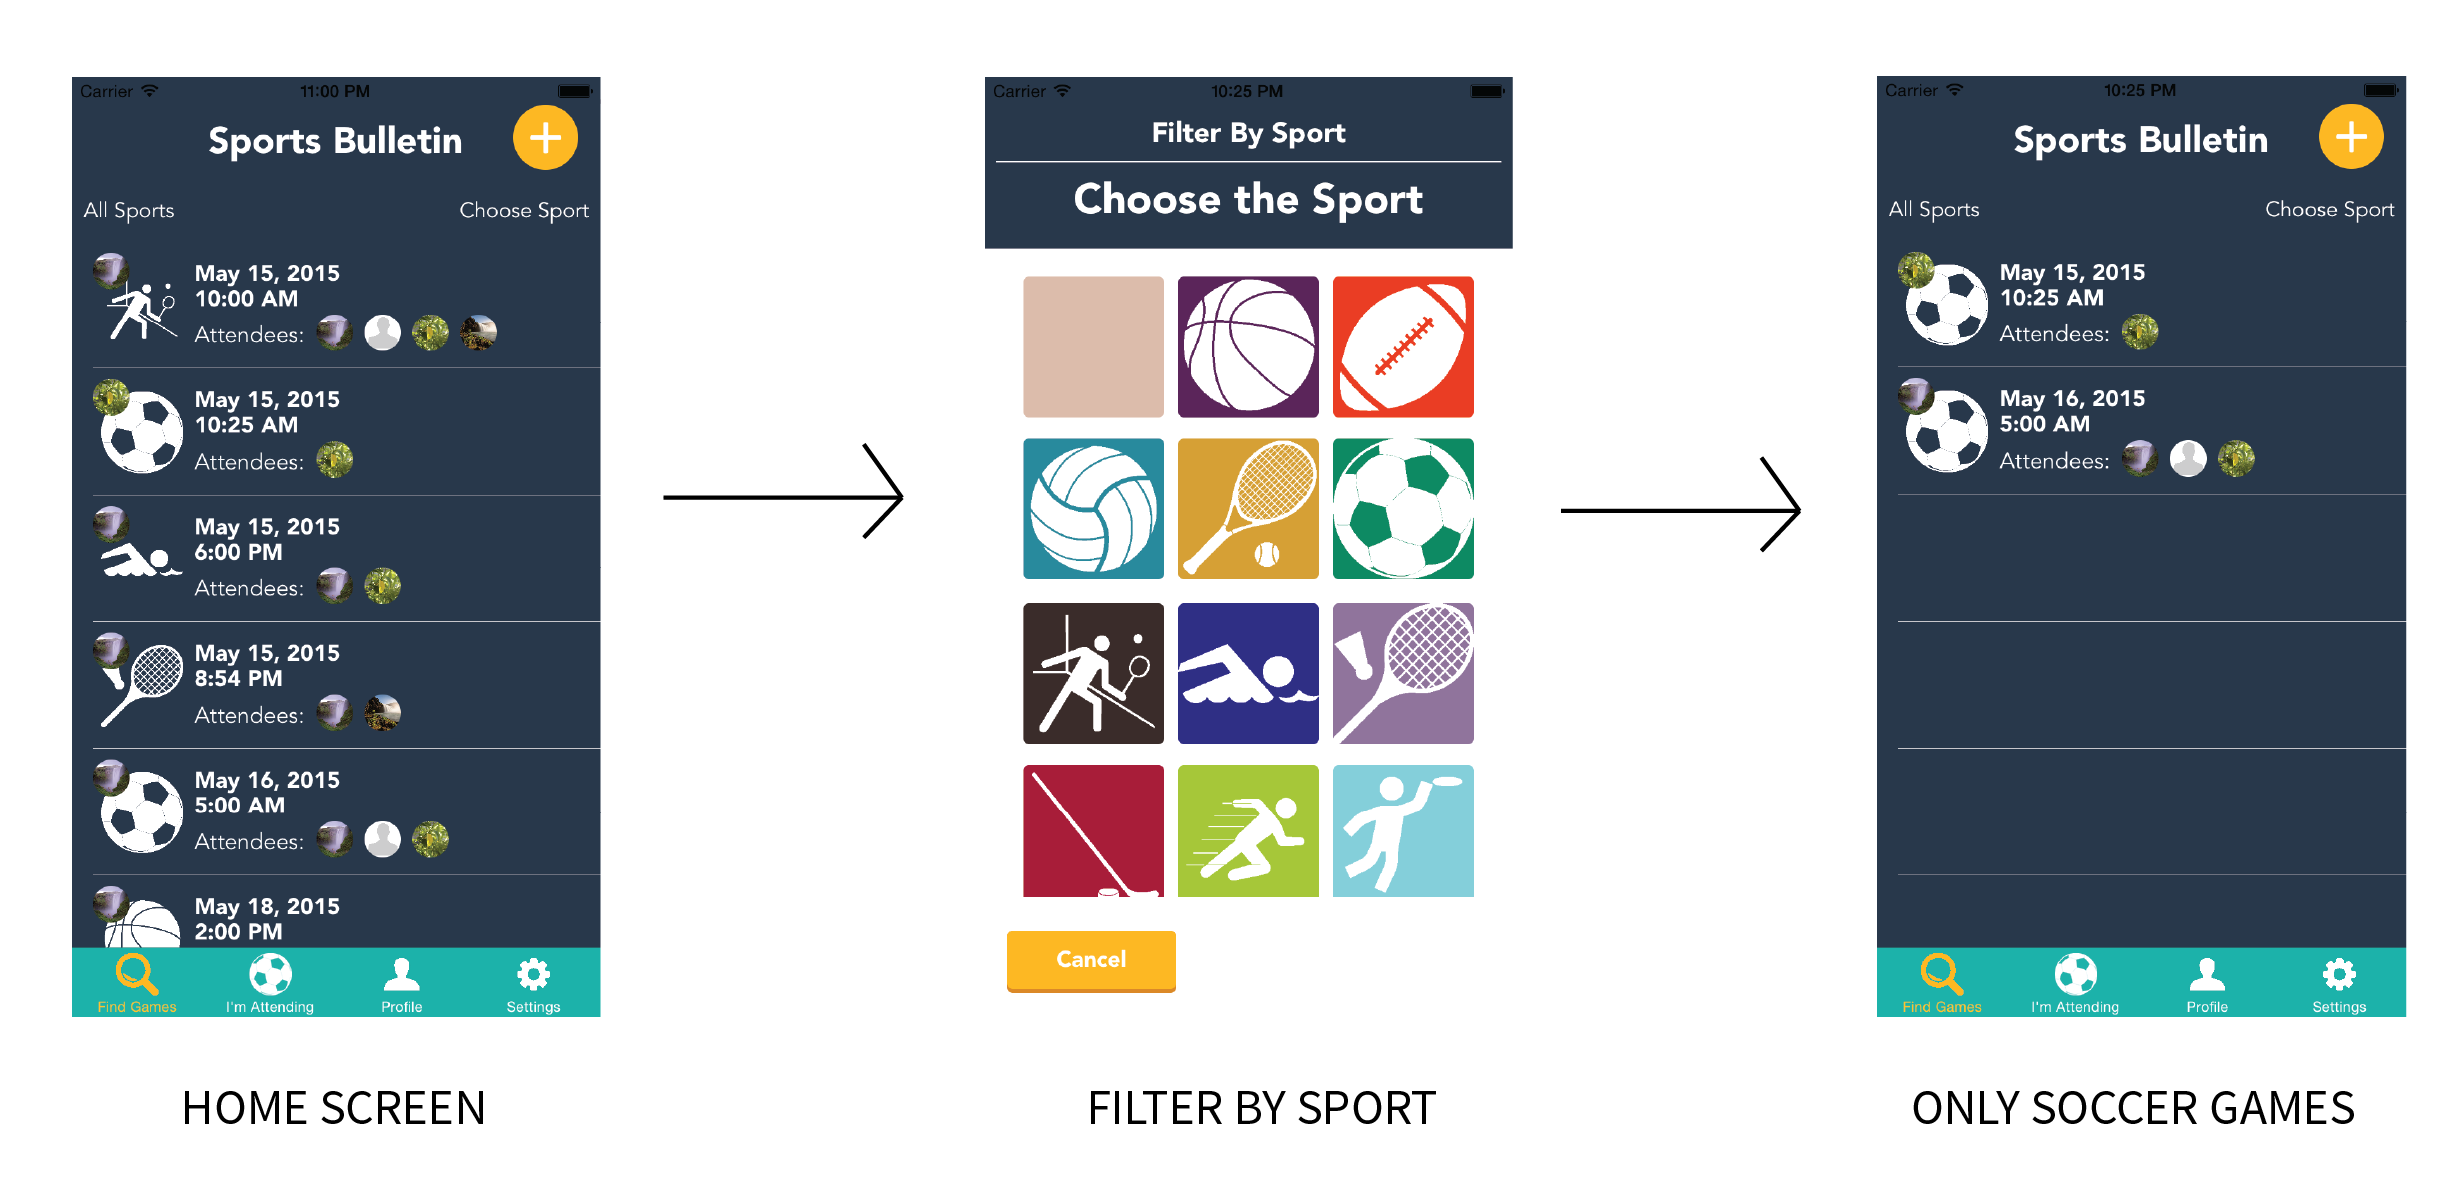 Filtering by Sport